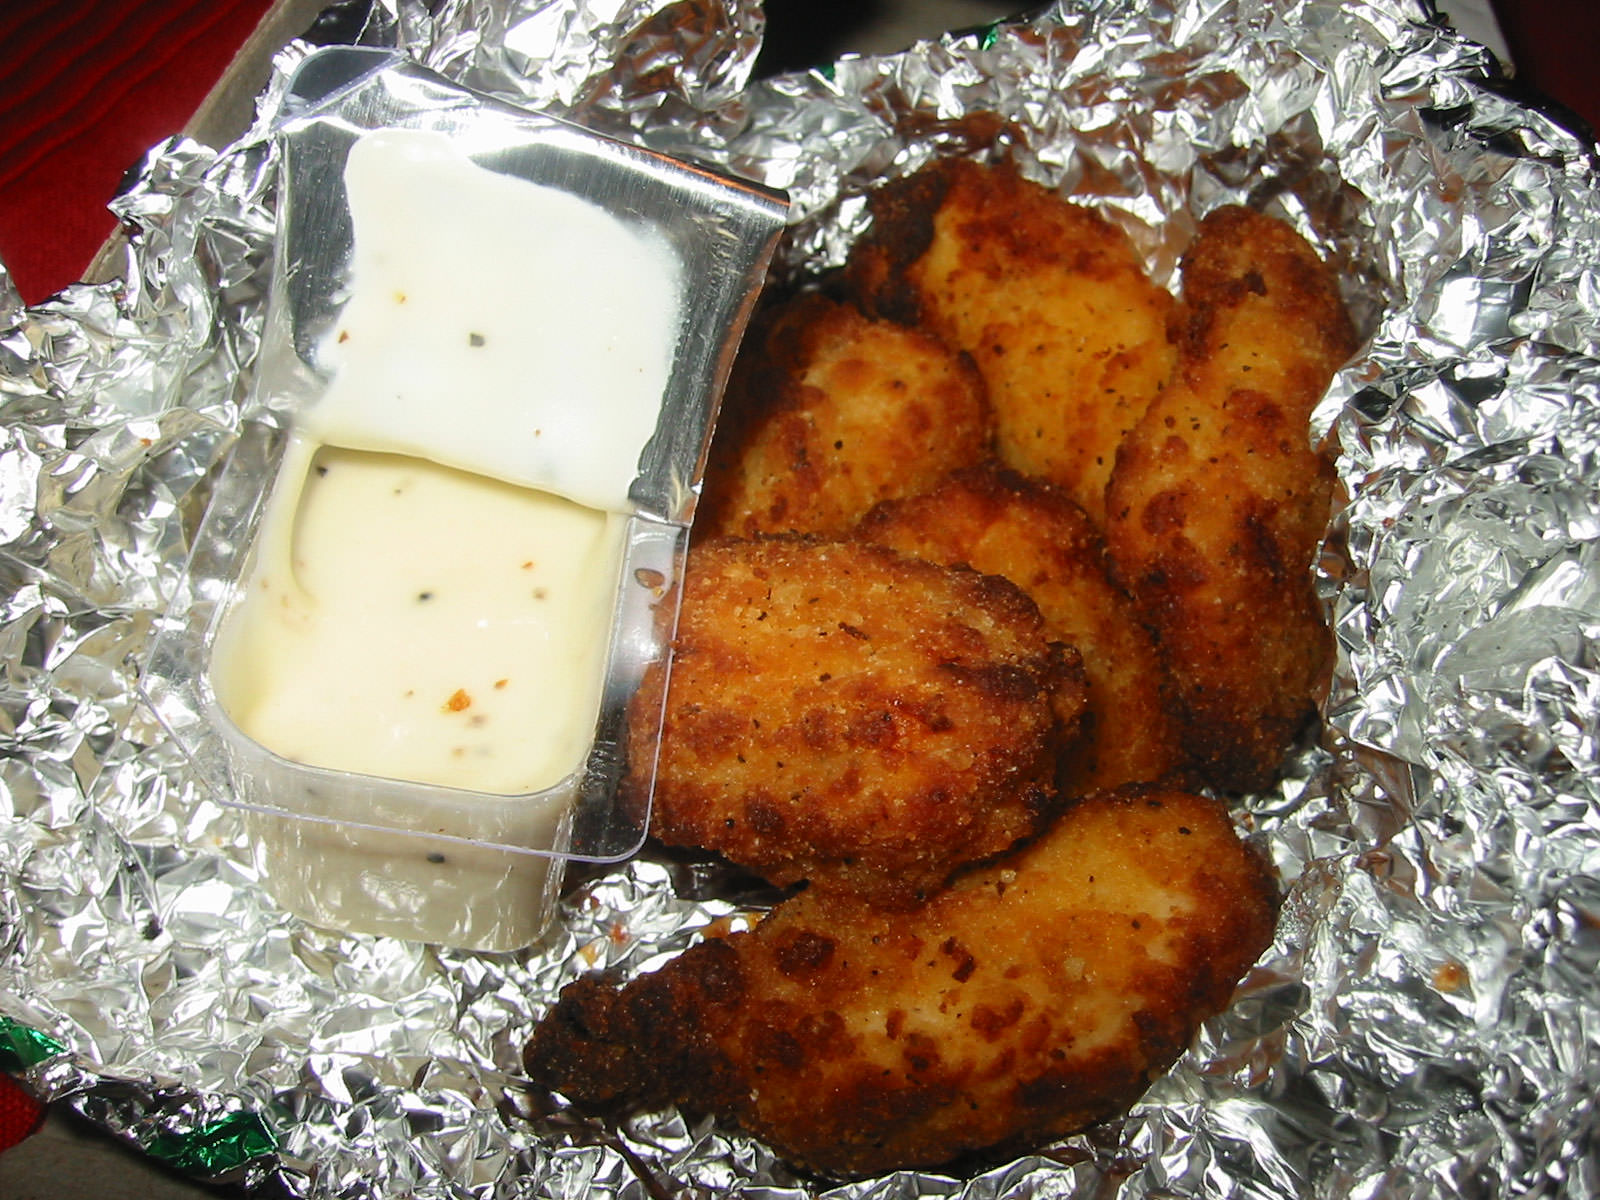 Chicken Kickers with ranch sauce